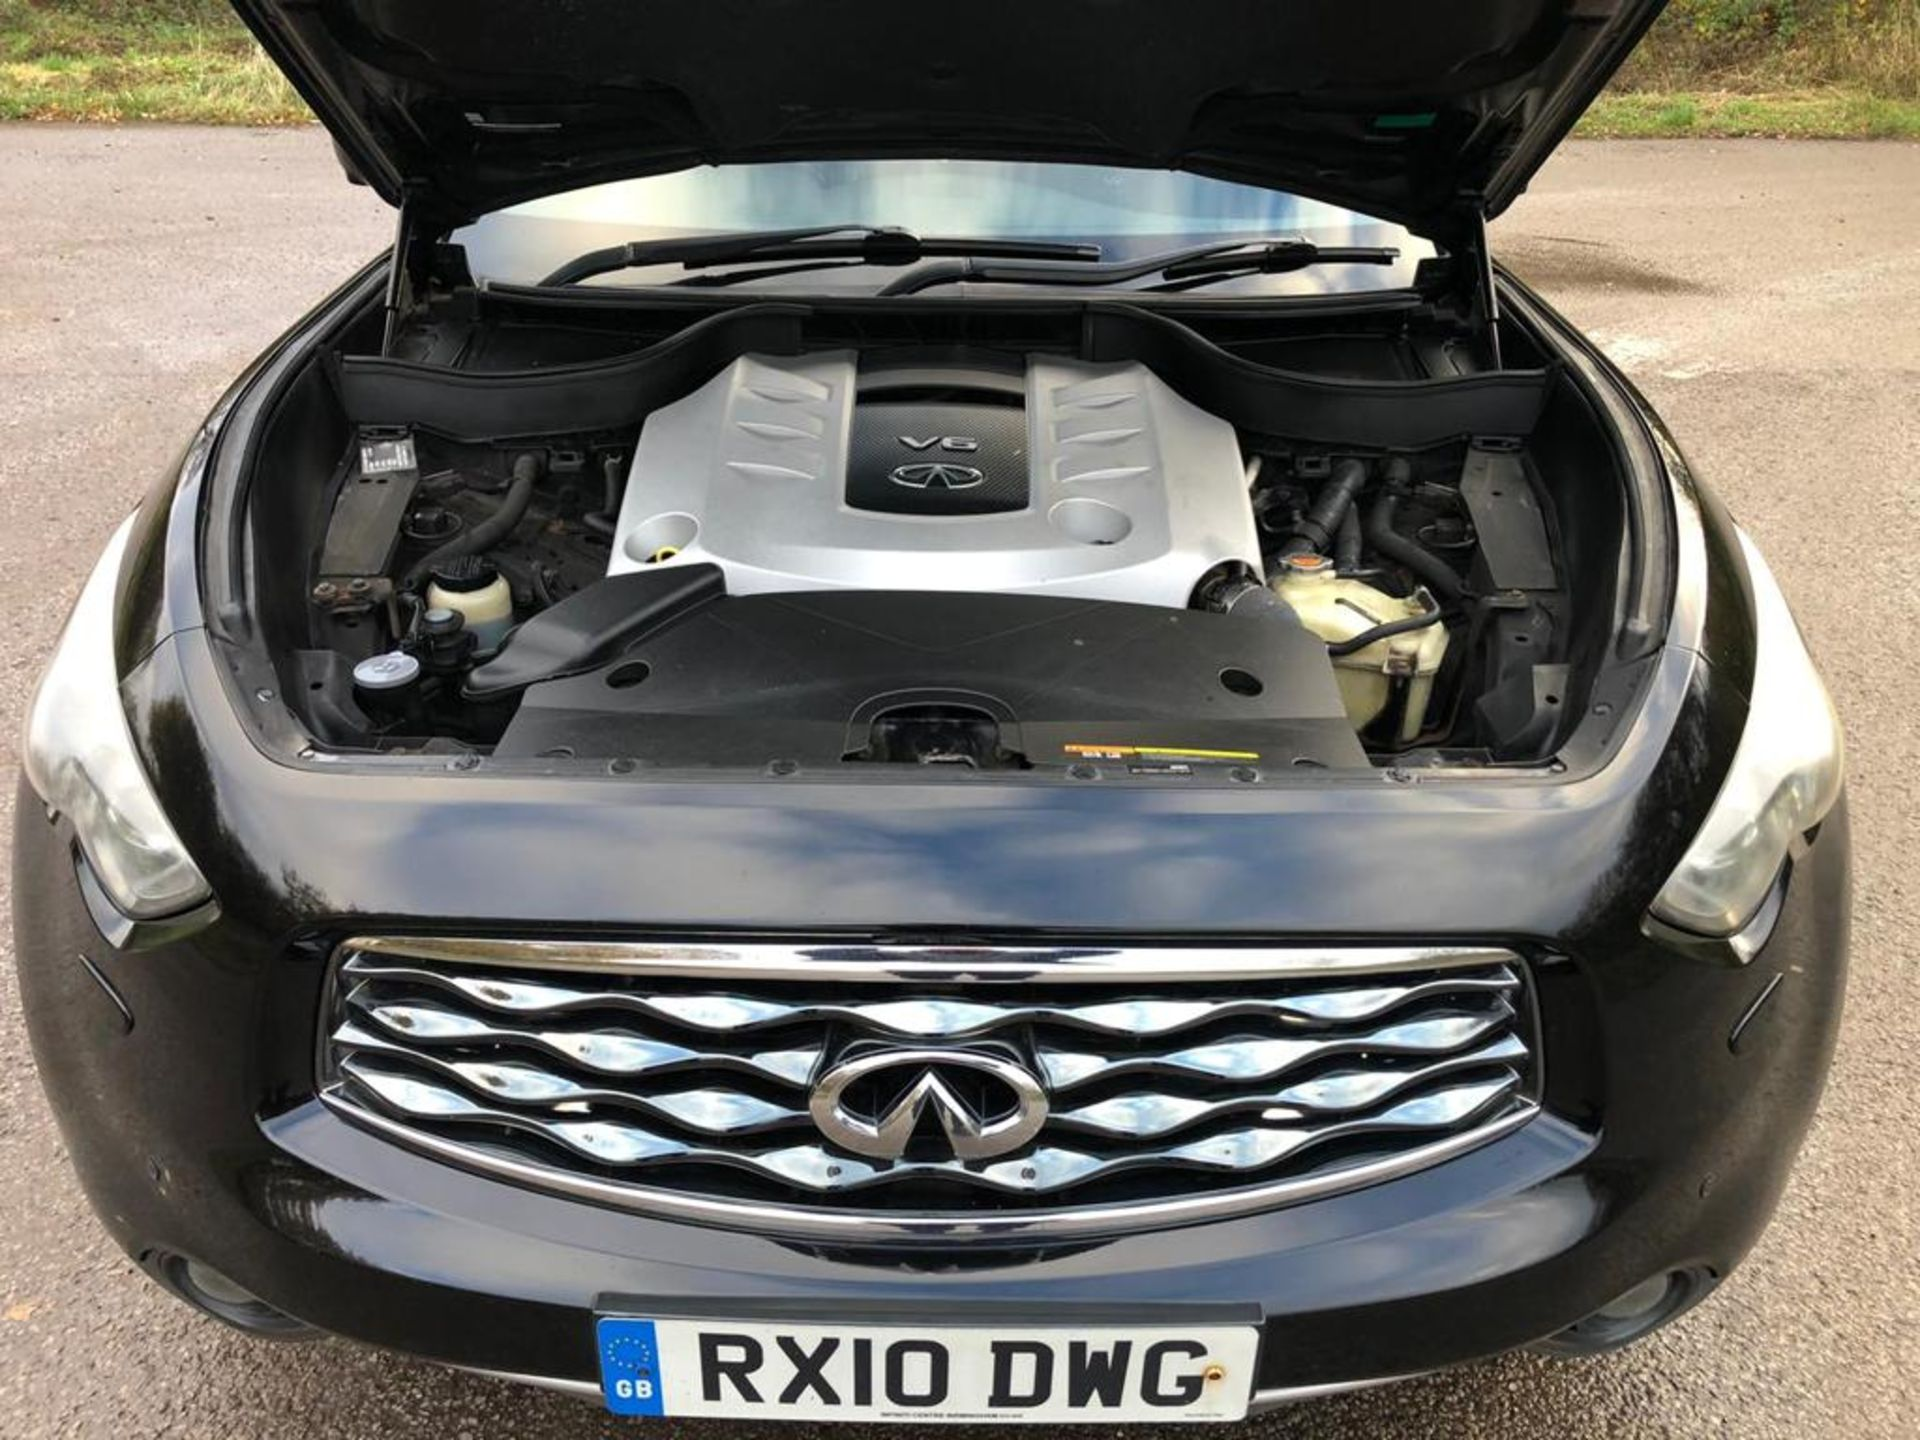 2010/10 REG INFINITI FX30 S AUTO 3.0L DIESEL 7 SPEED AUTOMATIC, SHOWING 2 FORMER KEEPERS *NO VAT* - Image 17 of 22